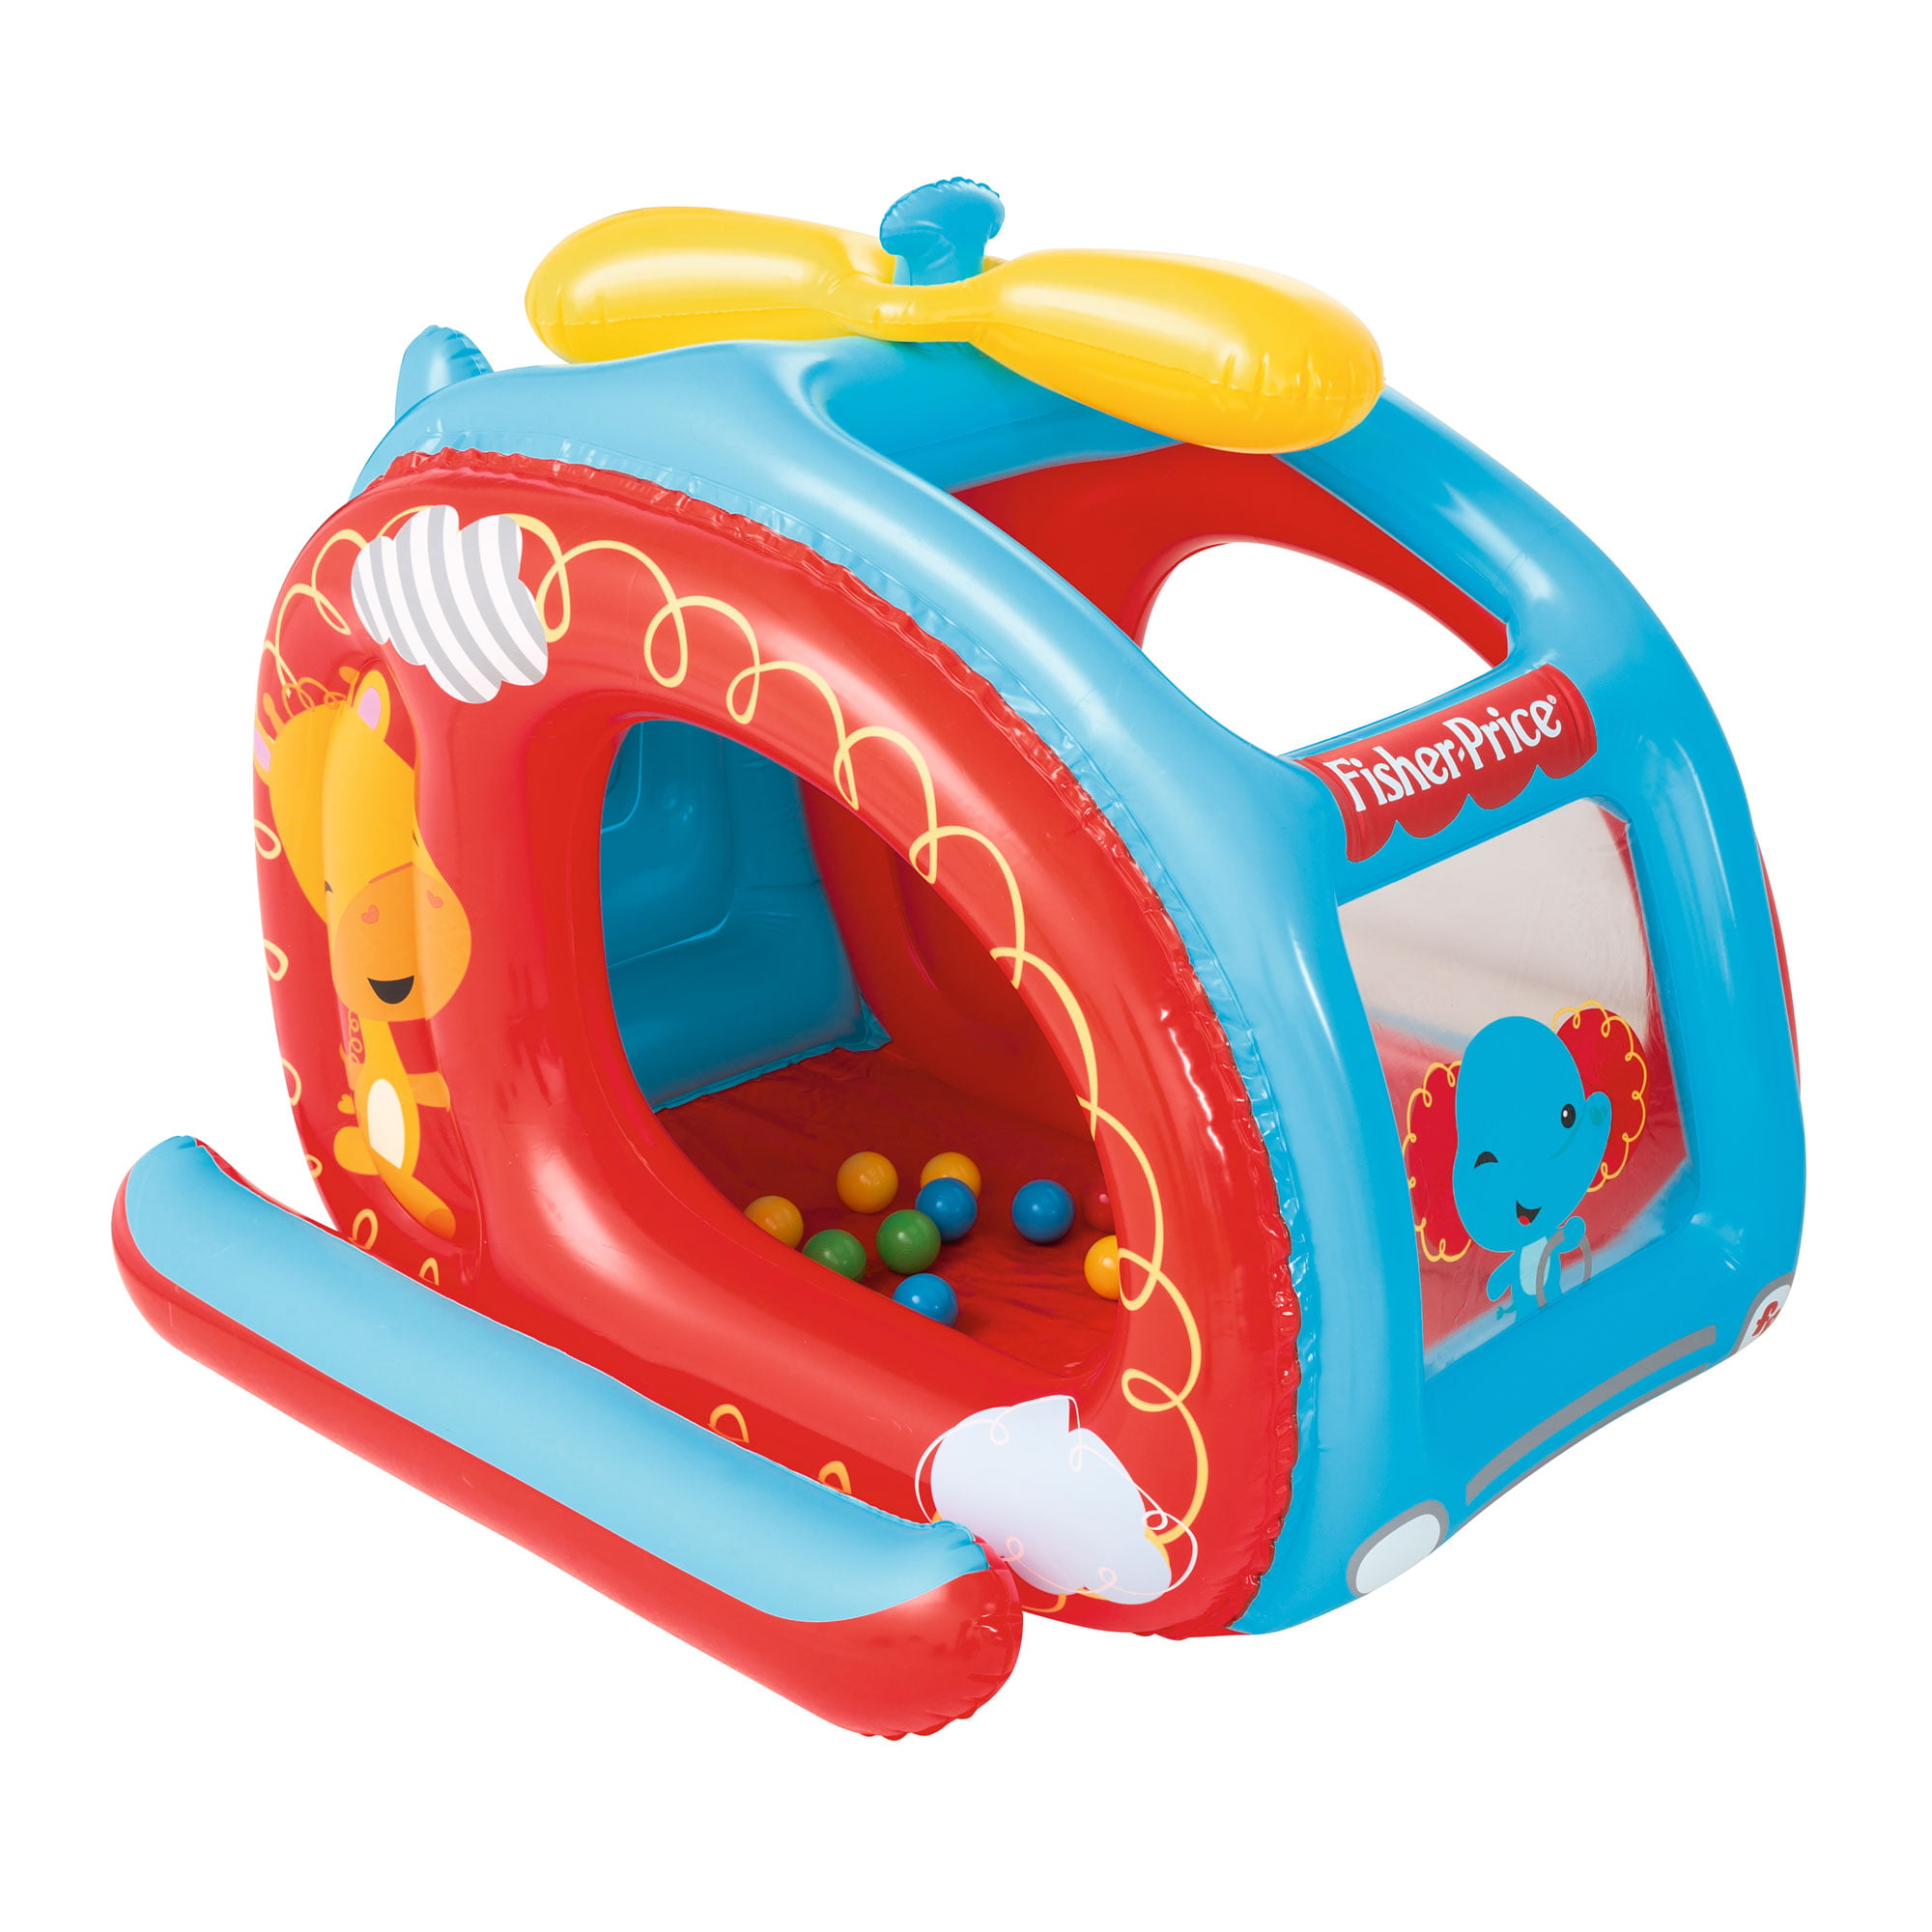 "Fisher Price 54"" x 44"" Inflatable Helicopter Vinyl Kids Play Ball Pit w  Balls by Fisher-Price"